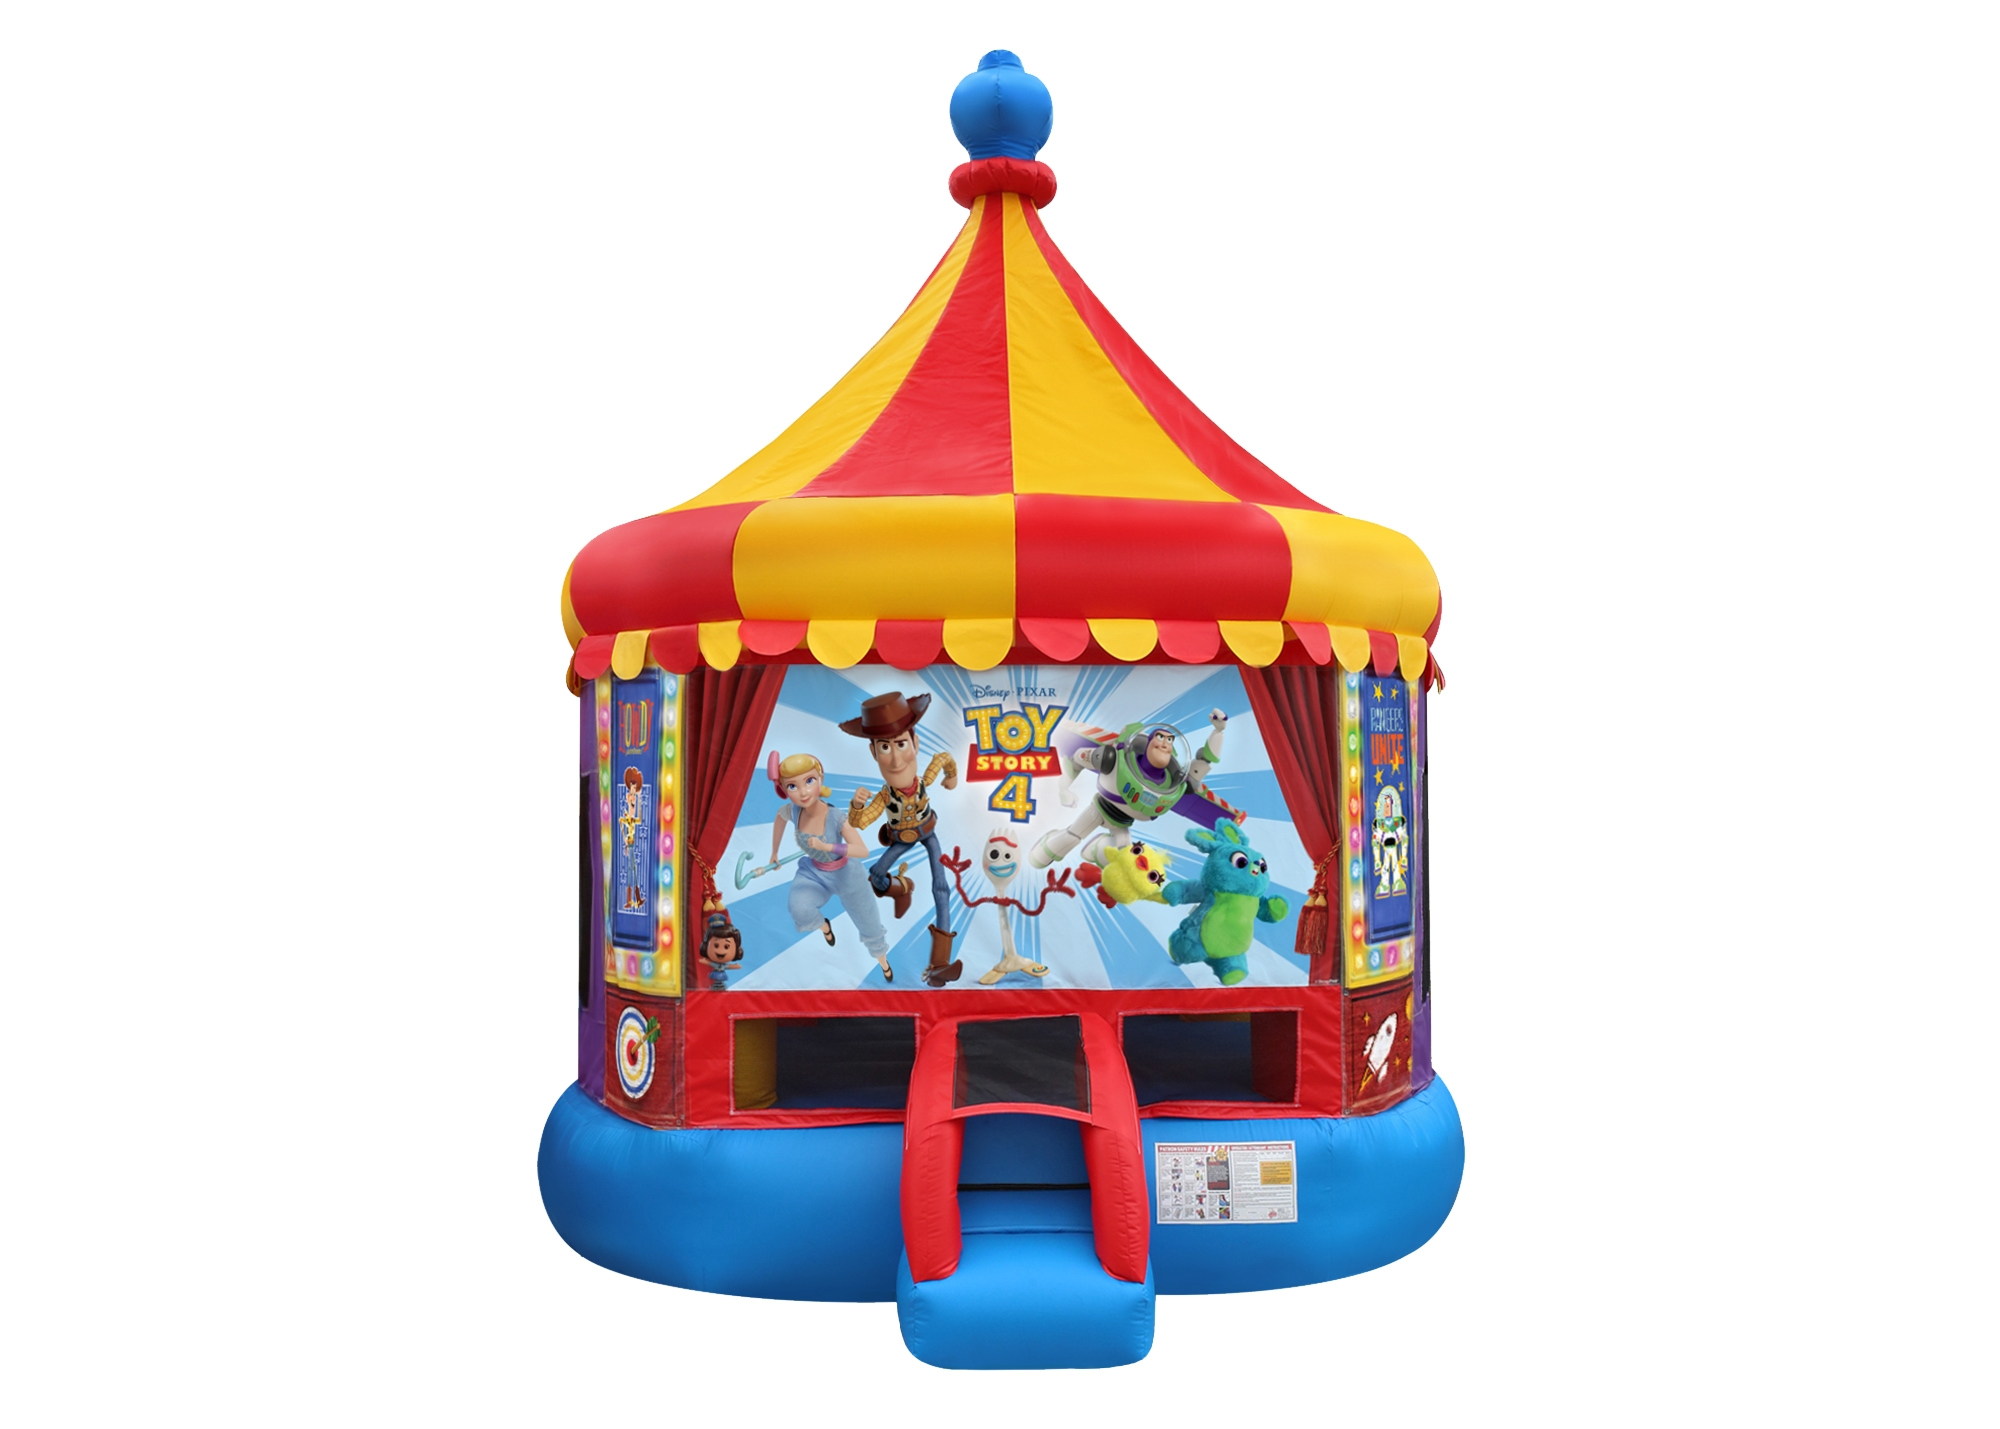 Toy Story 4 Bounce House Rentals Houston